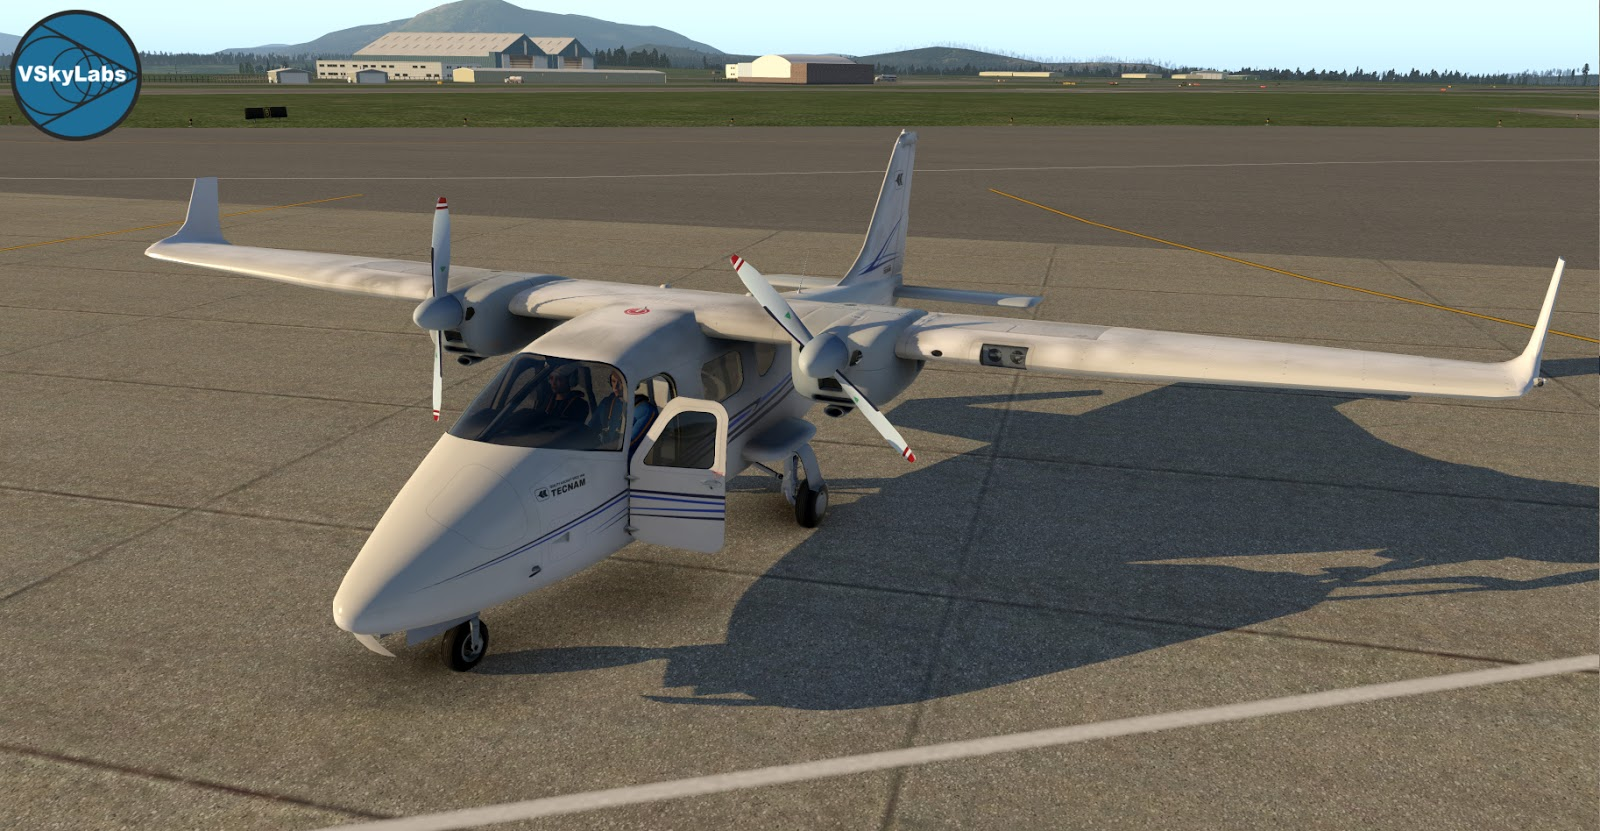 The VSKYLABS Tecnam P2006T